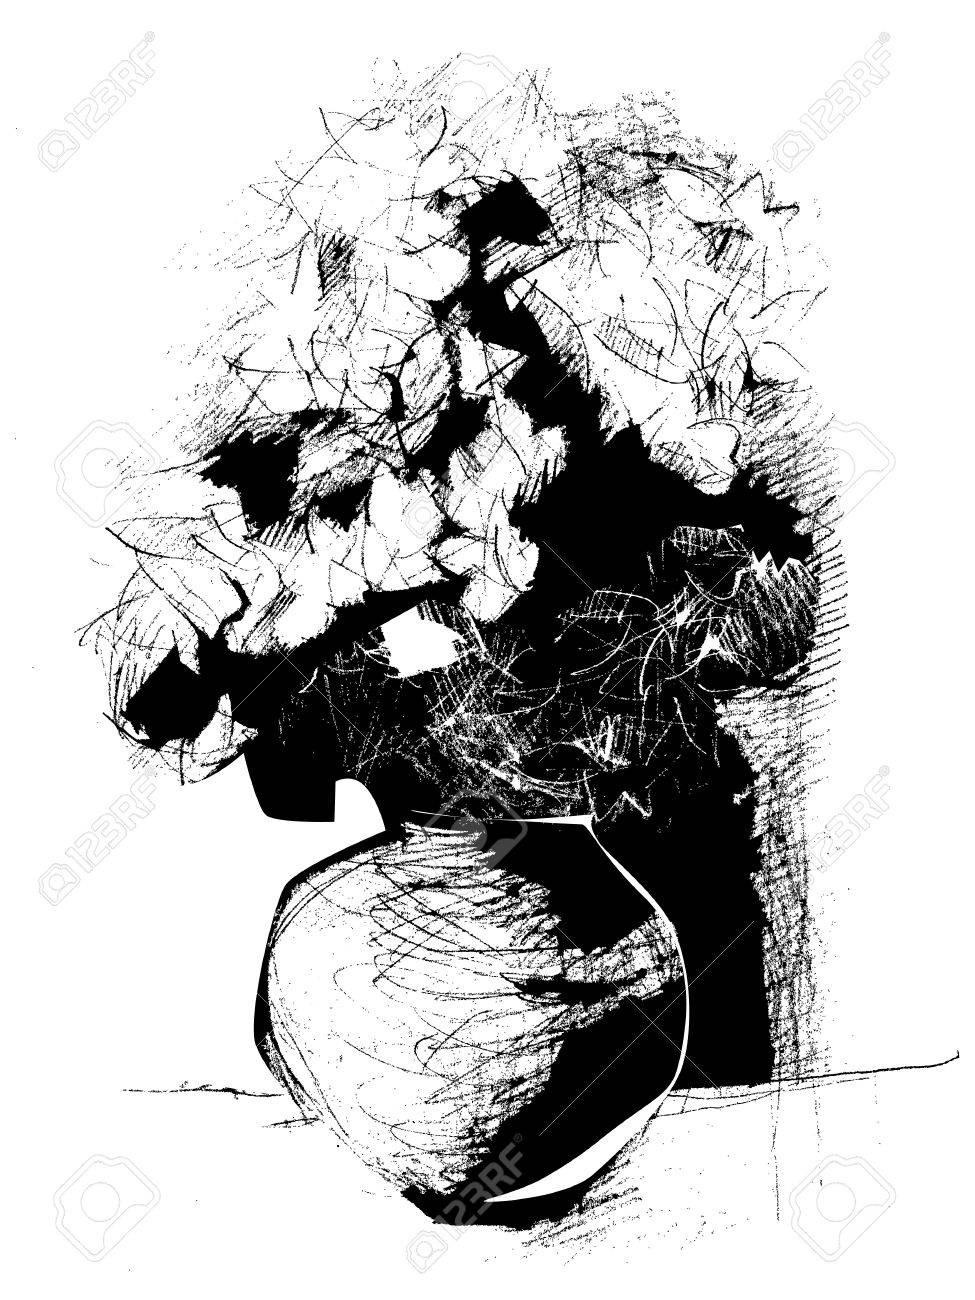 975x1300 Black And White Still Life With Flowers, Hand Drawn Sketch